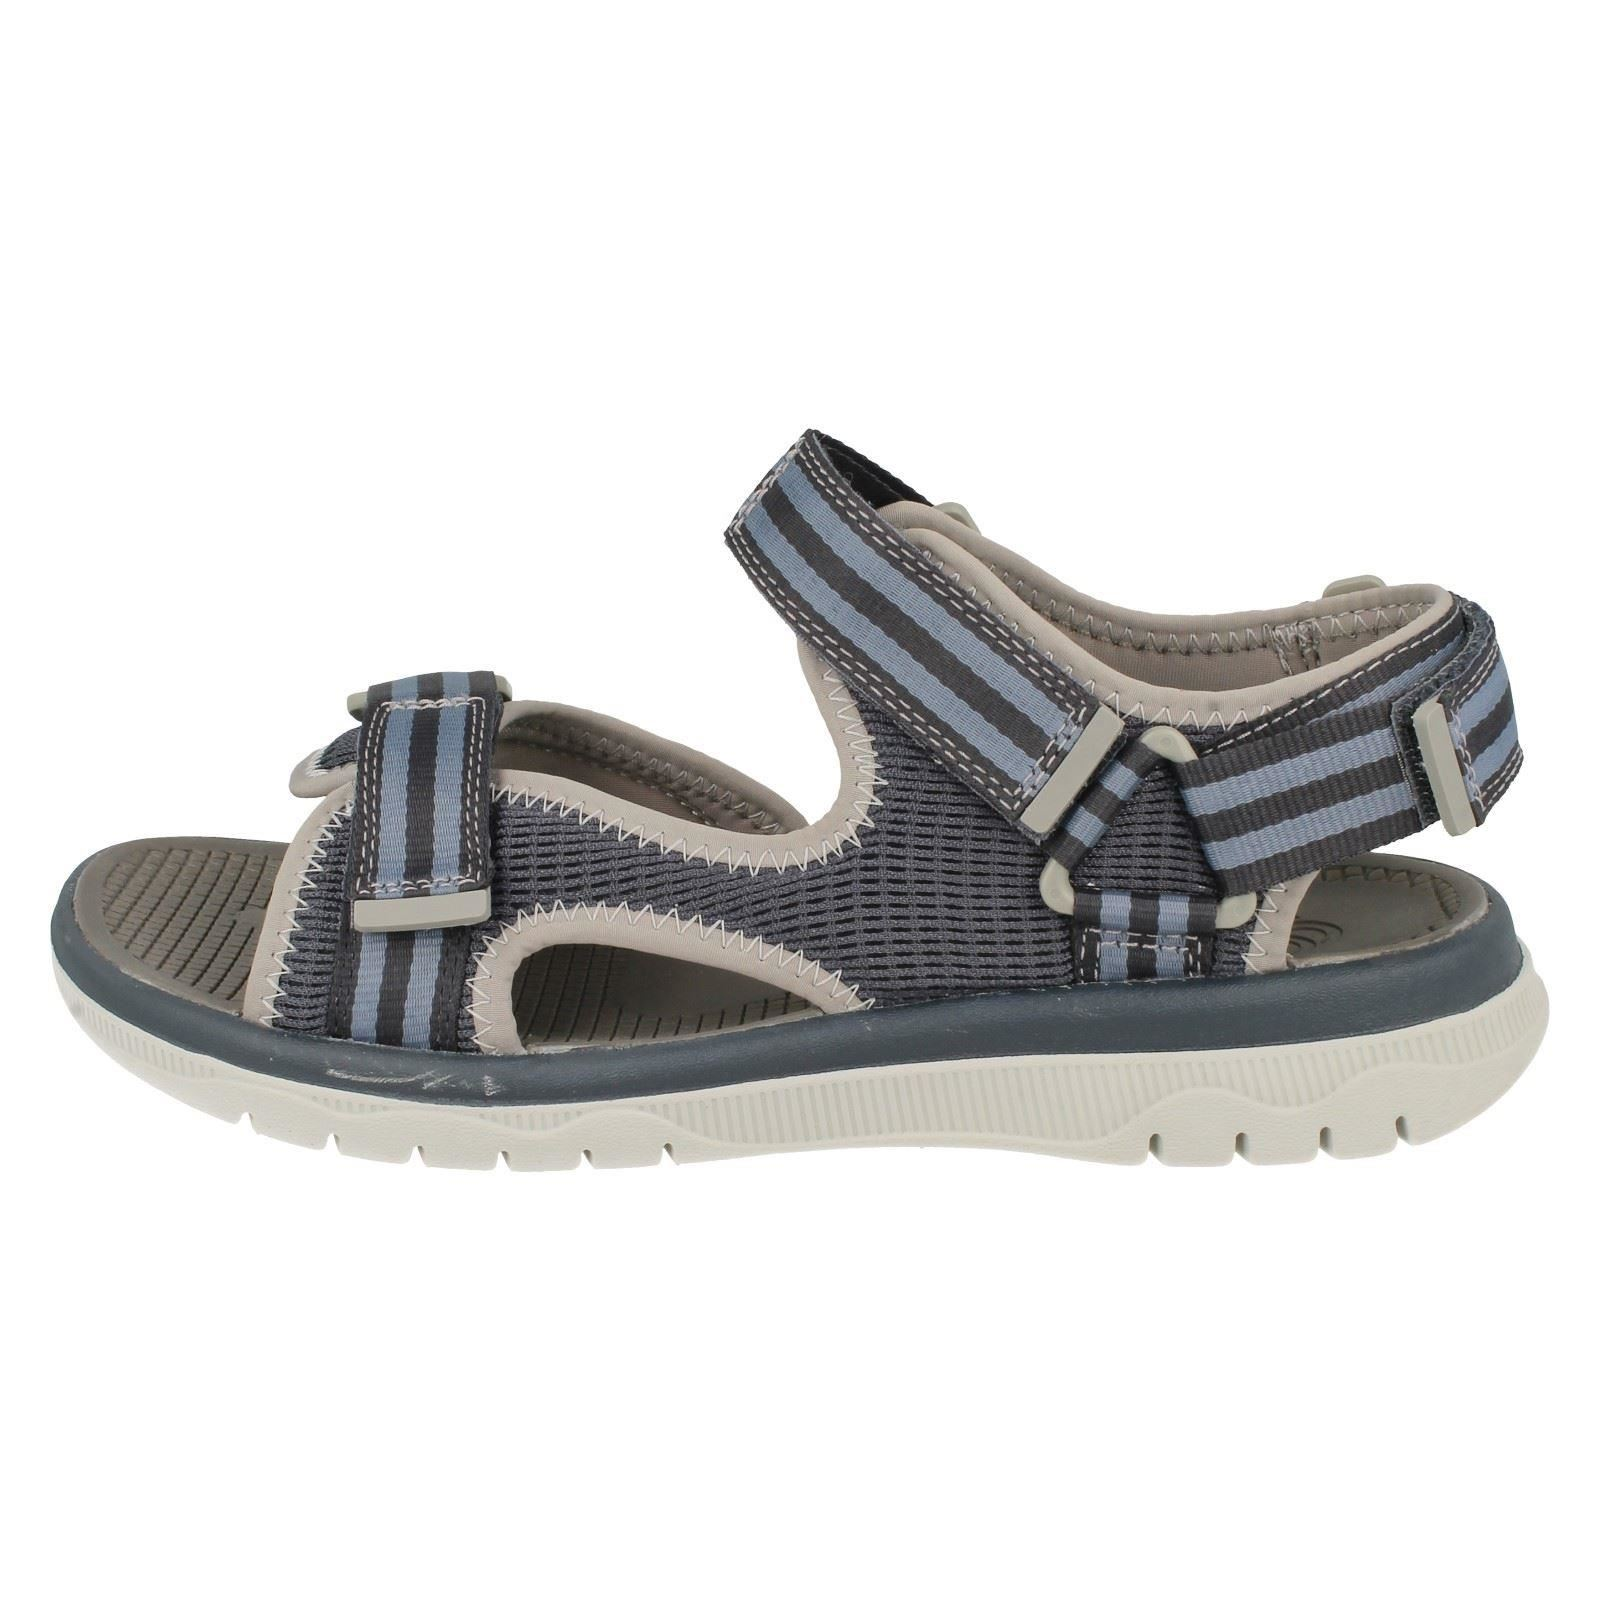 267ee247d5e Clarks Balta Sky Mens Cloudsteppers Sandals UK 8.5 Navy. About this  product. Picture 1 of 10  Picture 2 of 10  Picture 3 of 10 ...